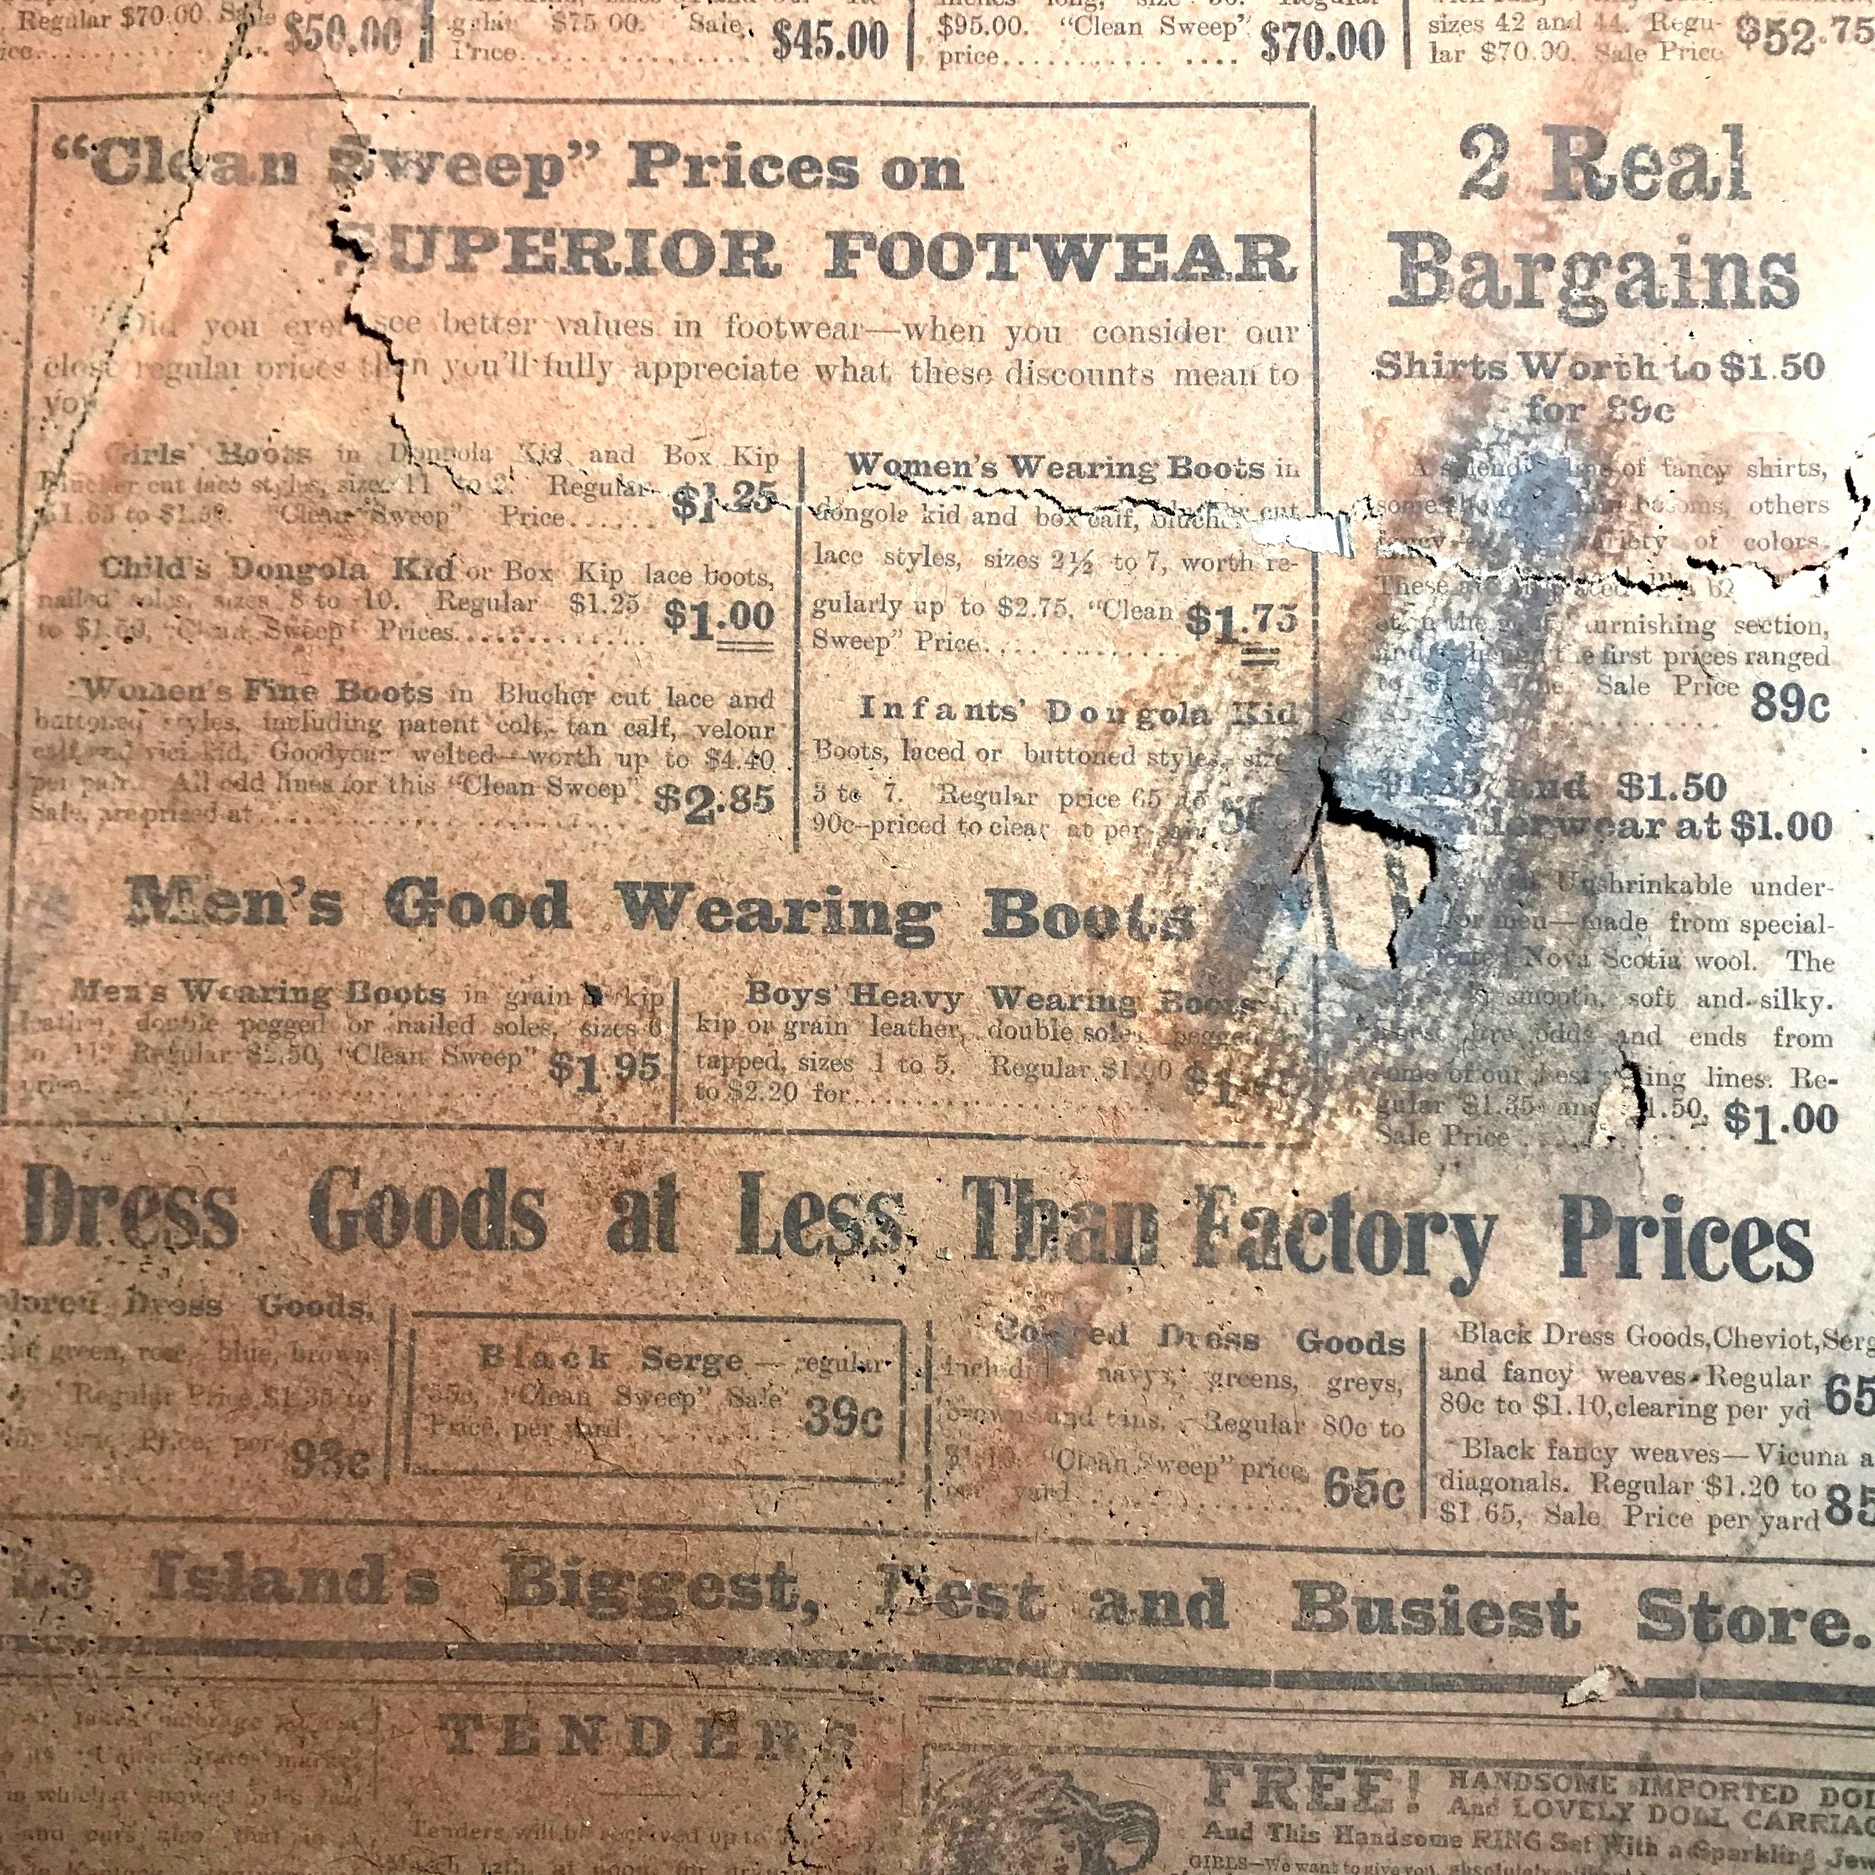 Some of the advertisements from a 1912 newspaper that Tristan found under floorboards.